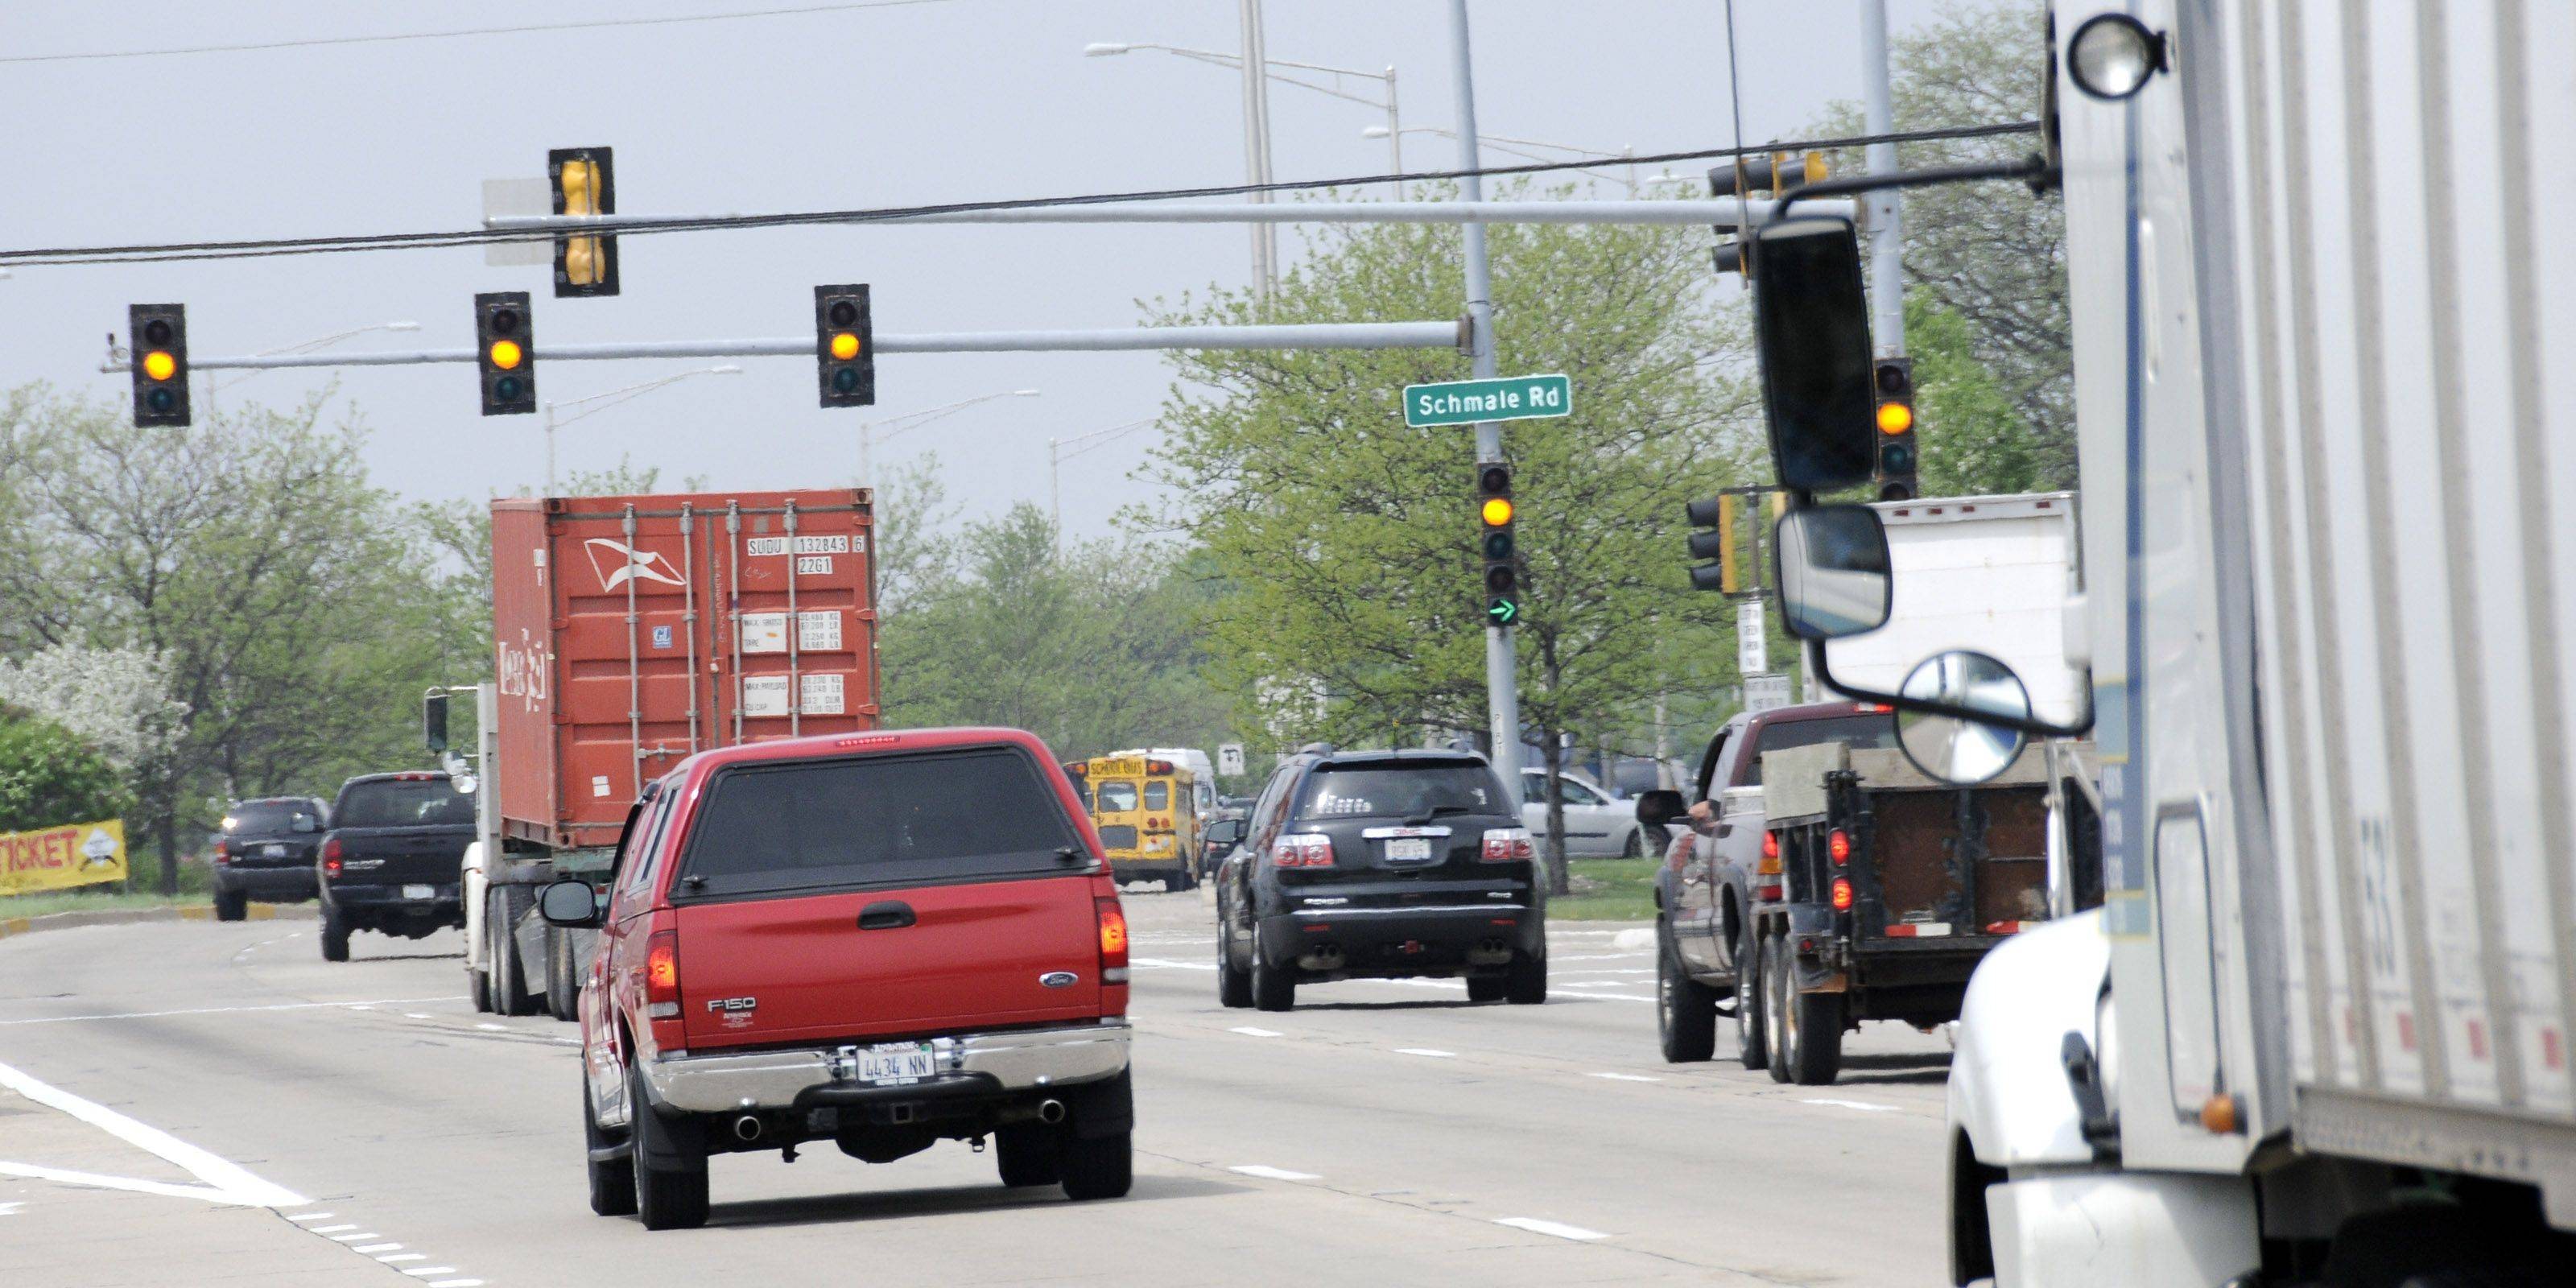 Carol Stream is one of the municipalities asking DuPage County for permission to install red-light cameras at intersections such as Schmale Road and North Avenue that are under the county's jurisdiction.